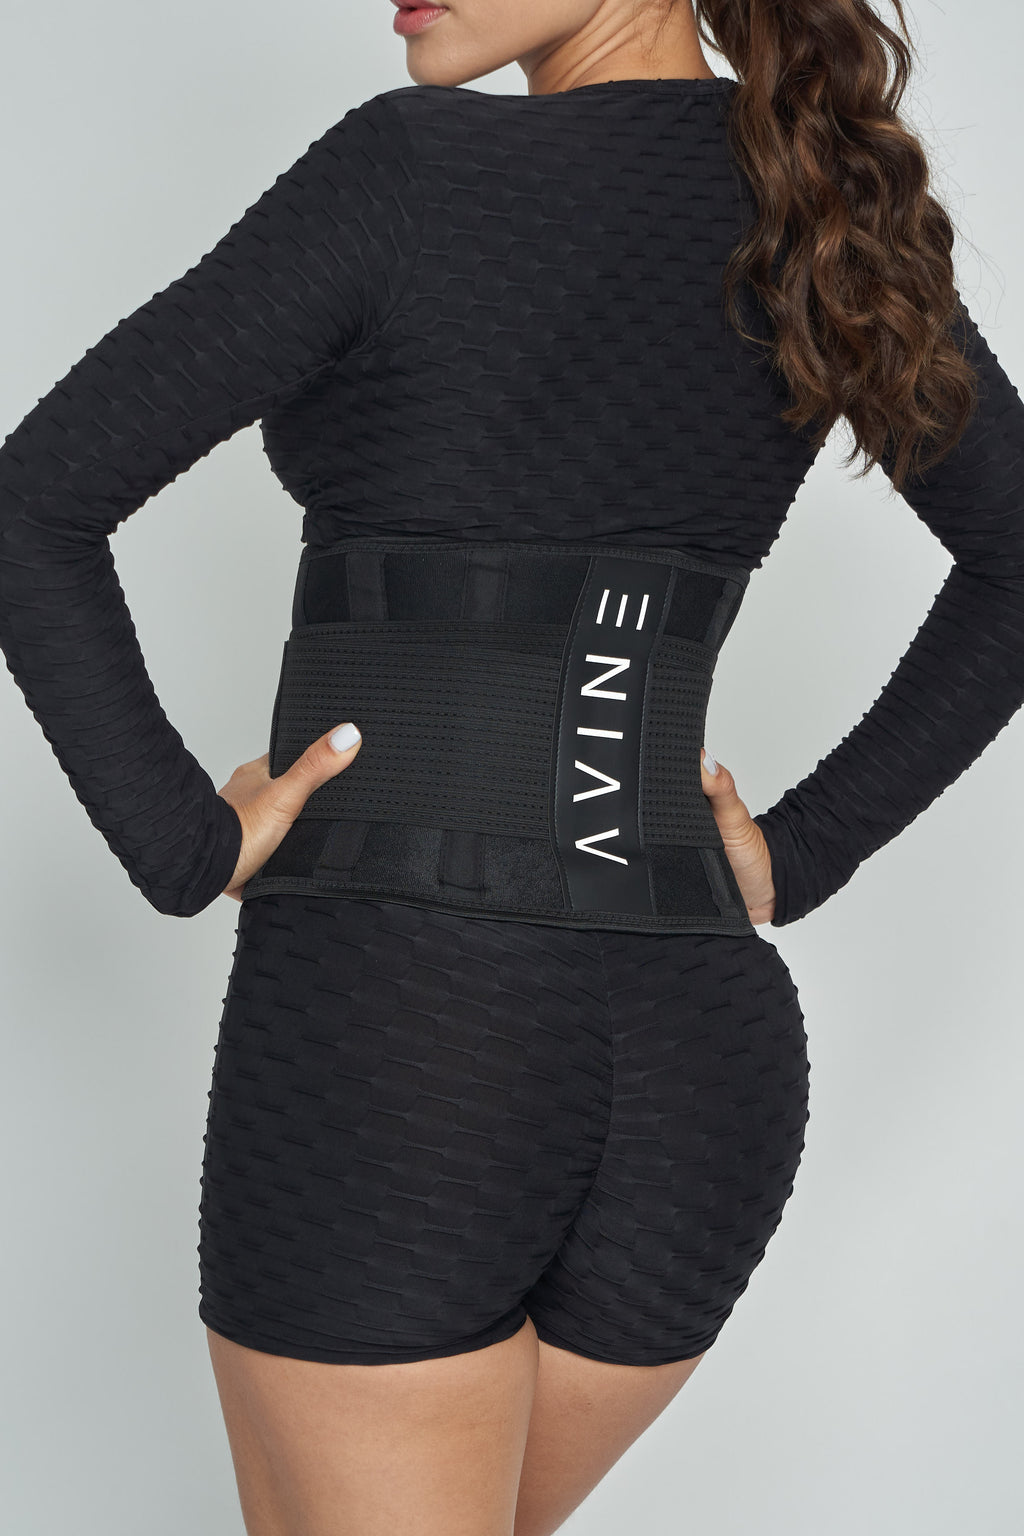 Black Waist Training Belt